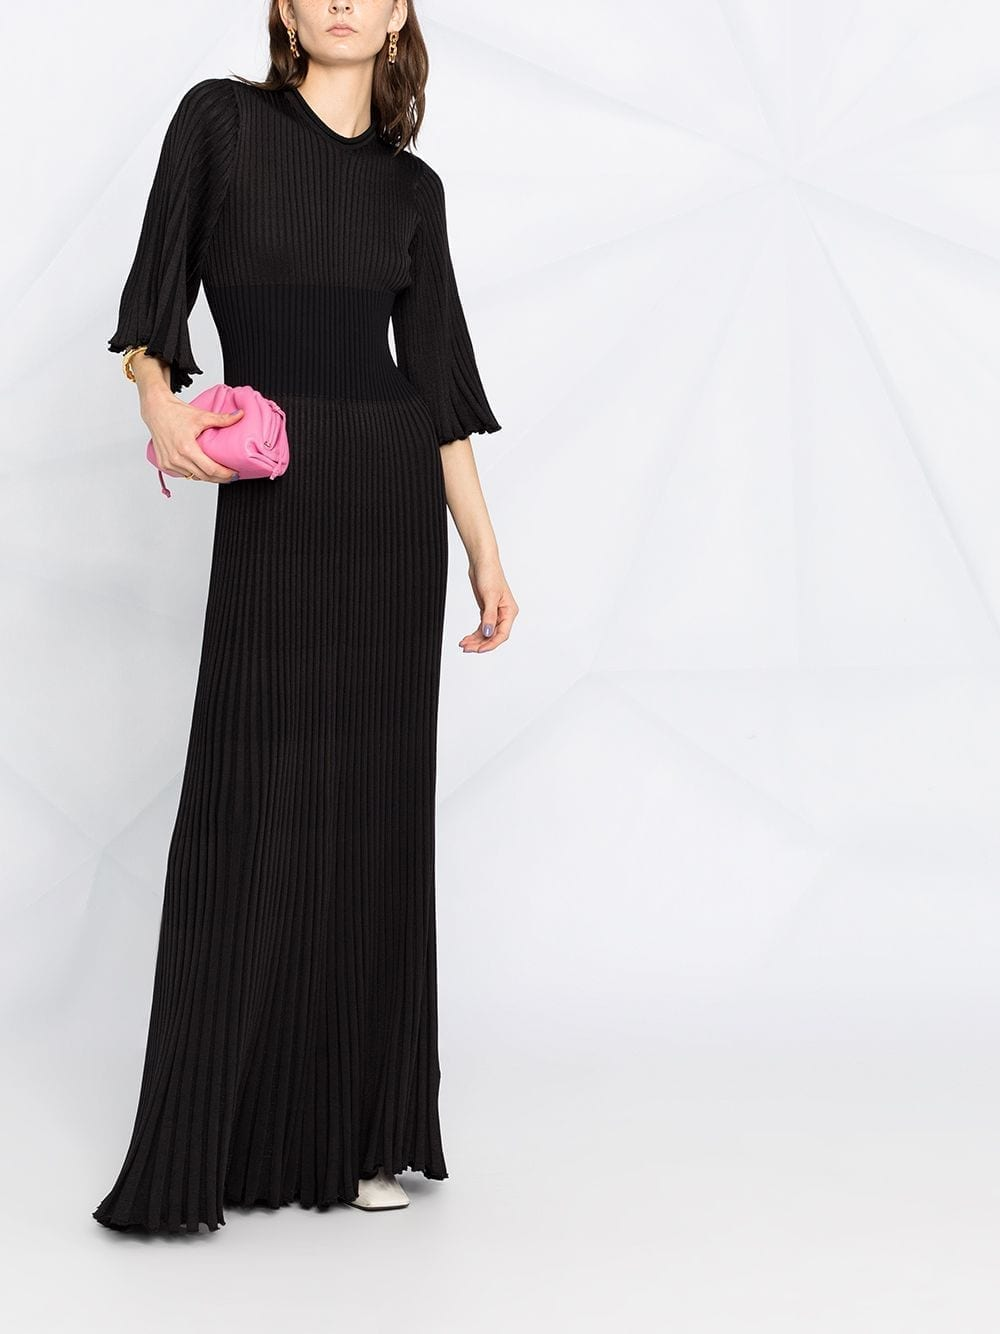 BOTTEGA VENETA Ribbed-knit Maxi Dress